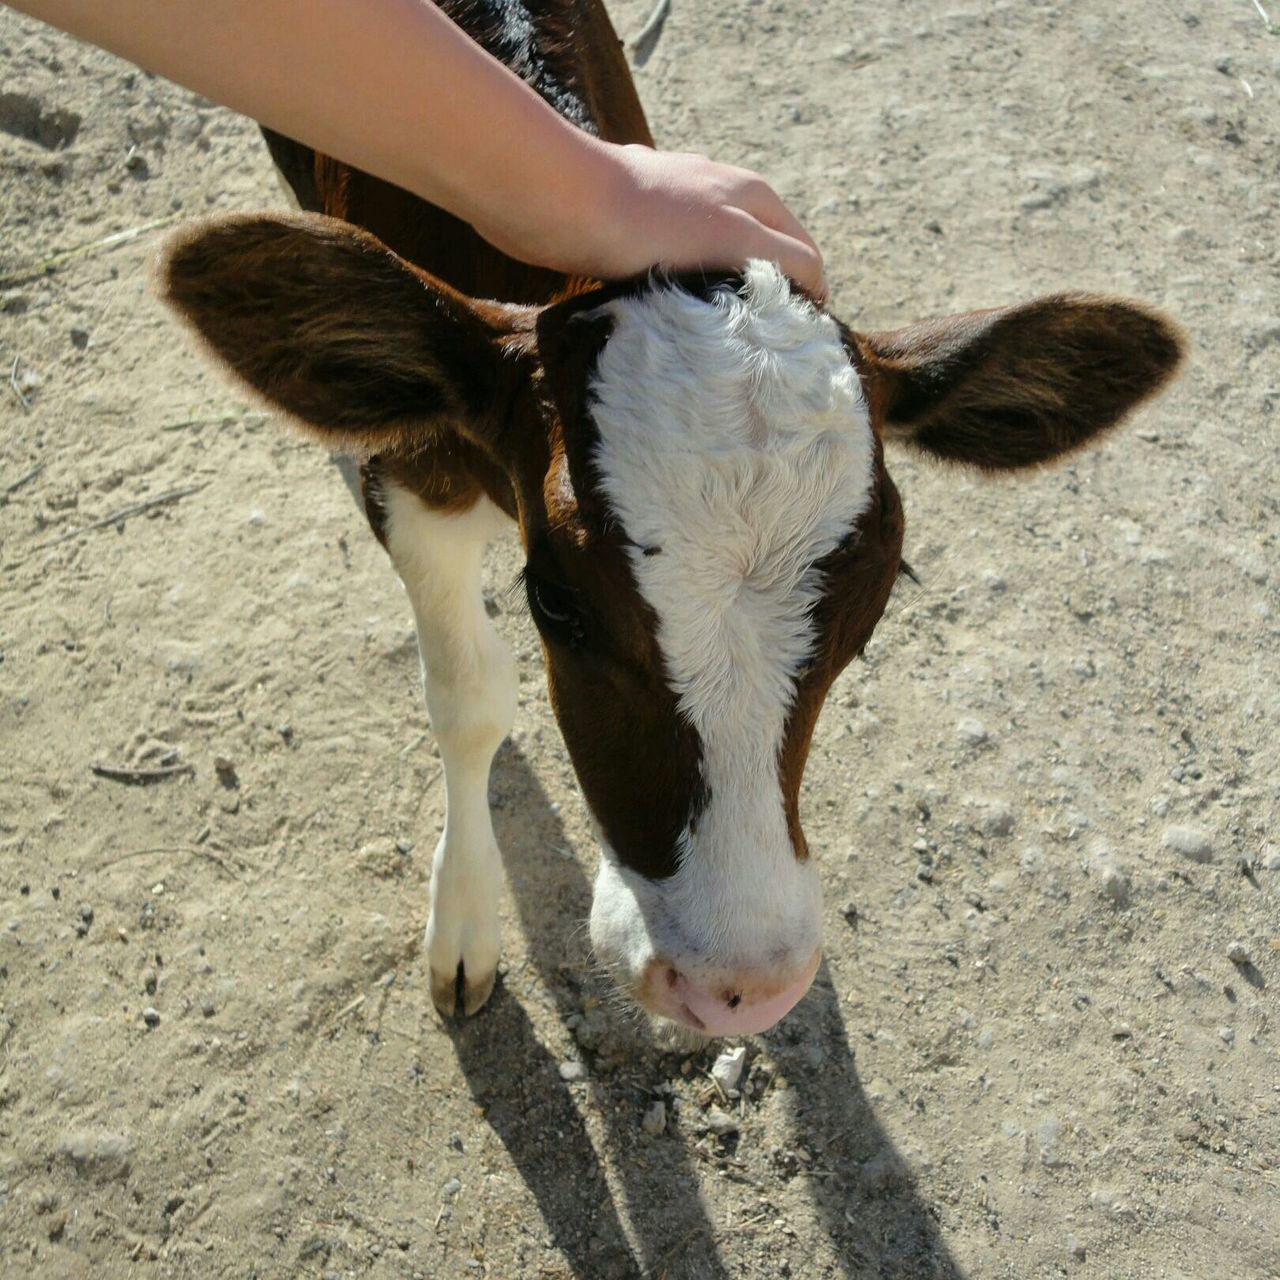 High angle view of hand touching calf on field